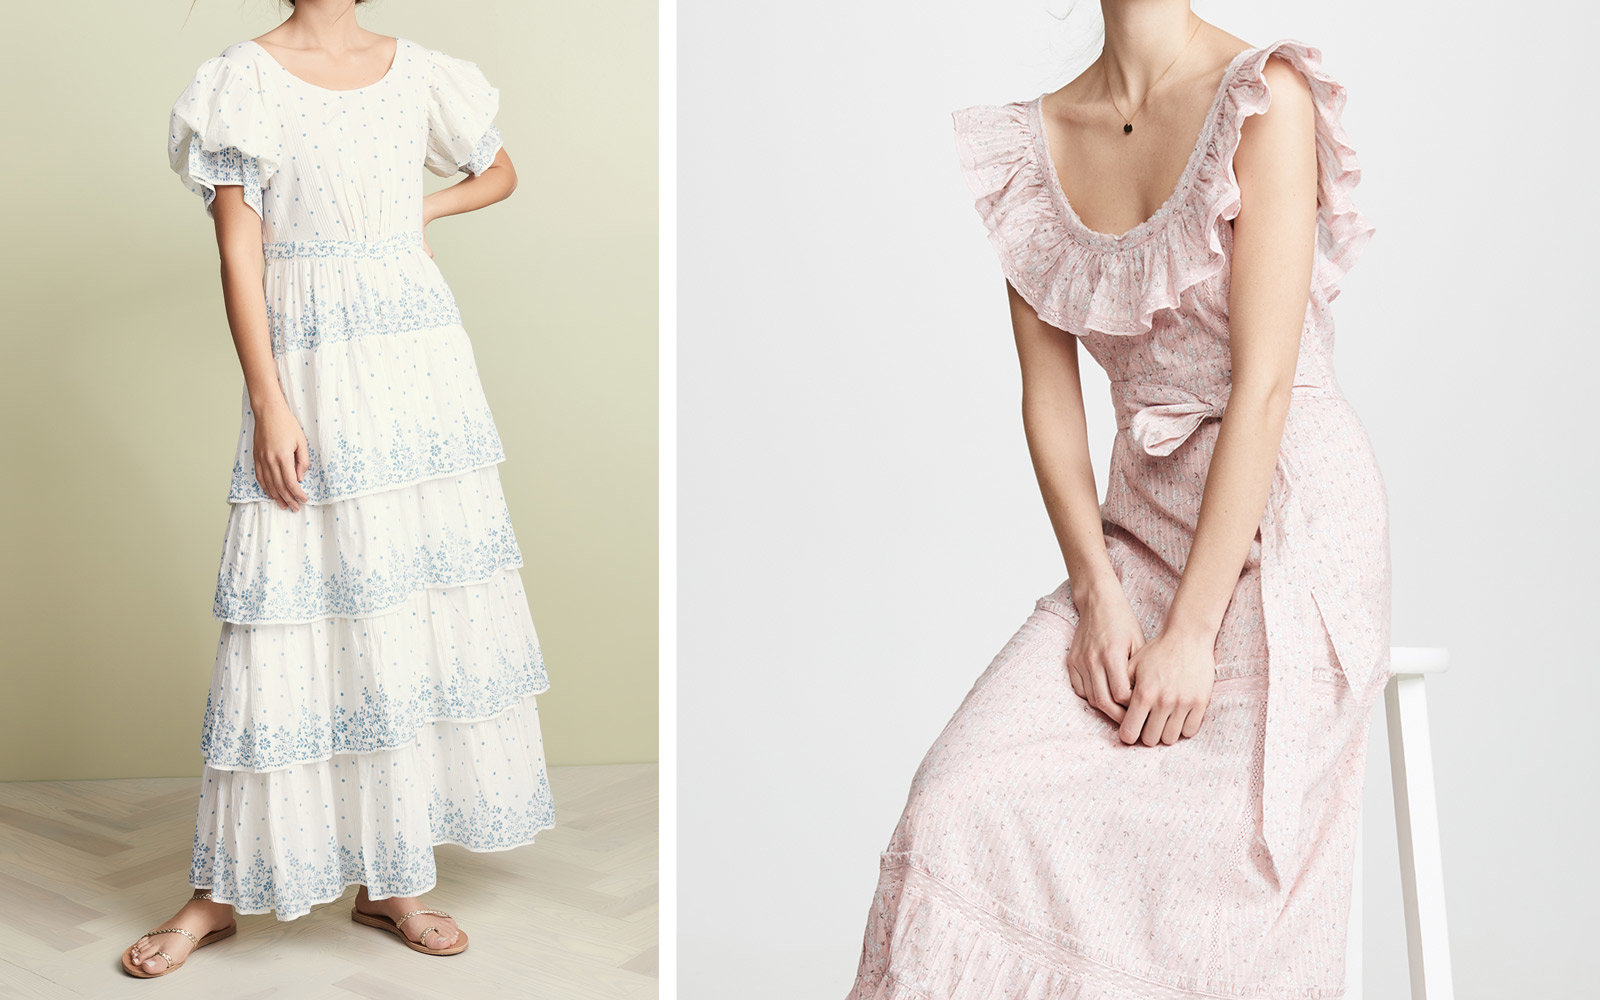 c87c700b9fb8 Where to Find the Prettiest Flowy Spring Dresses | Travel + Leisure